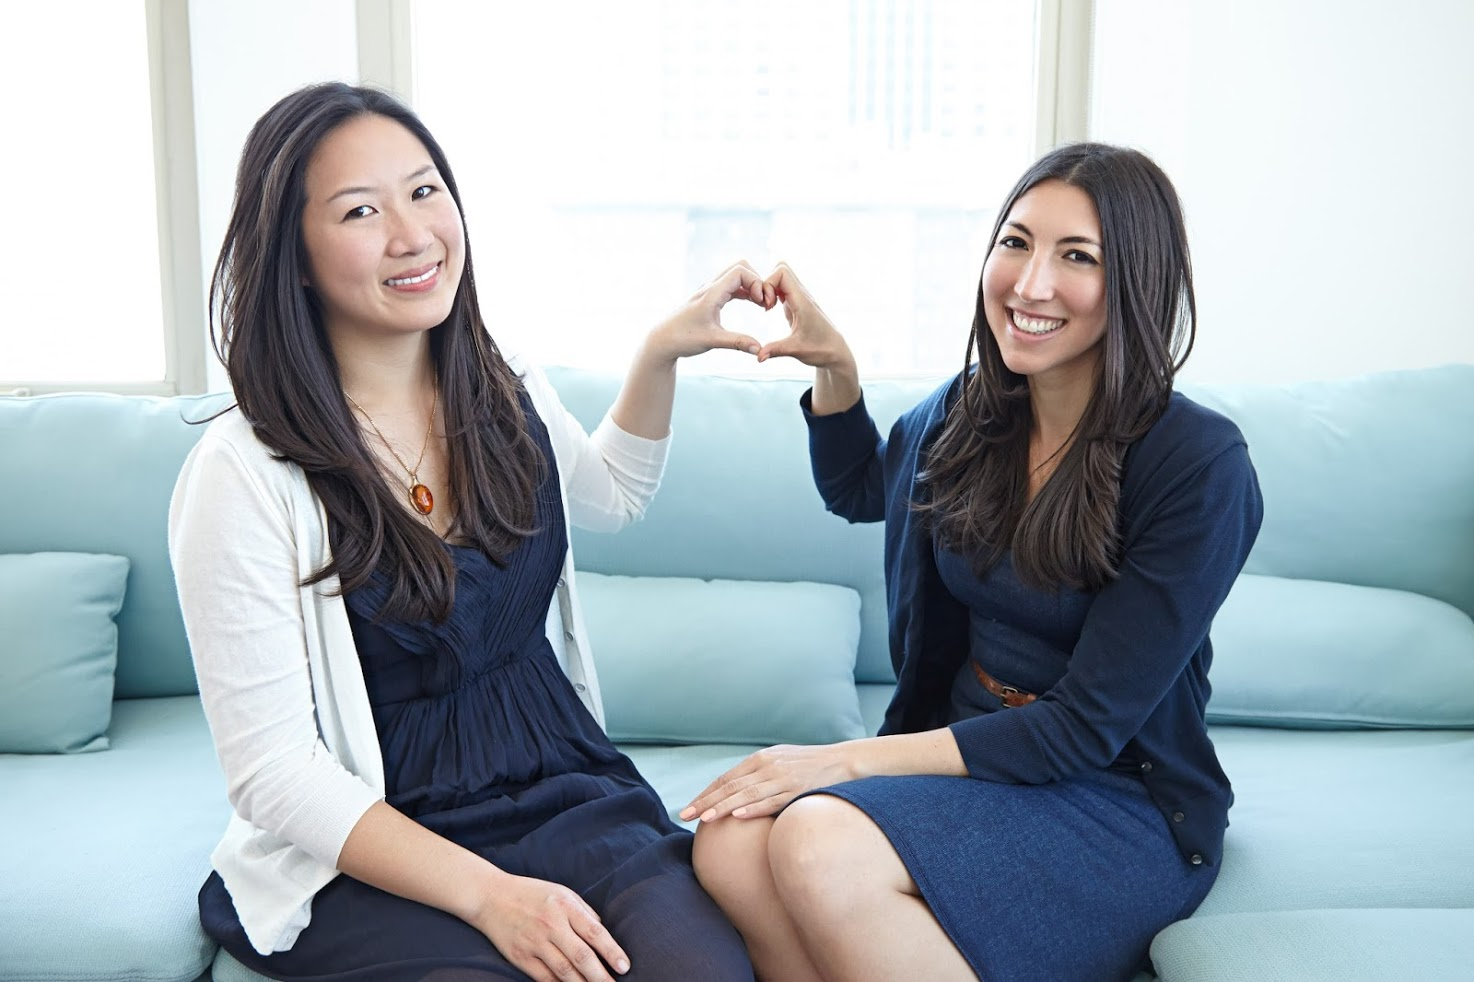 Binti co-founders, Julia Chou (left) and Felicia Curcuru (right)